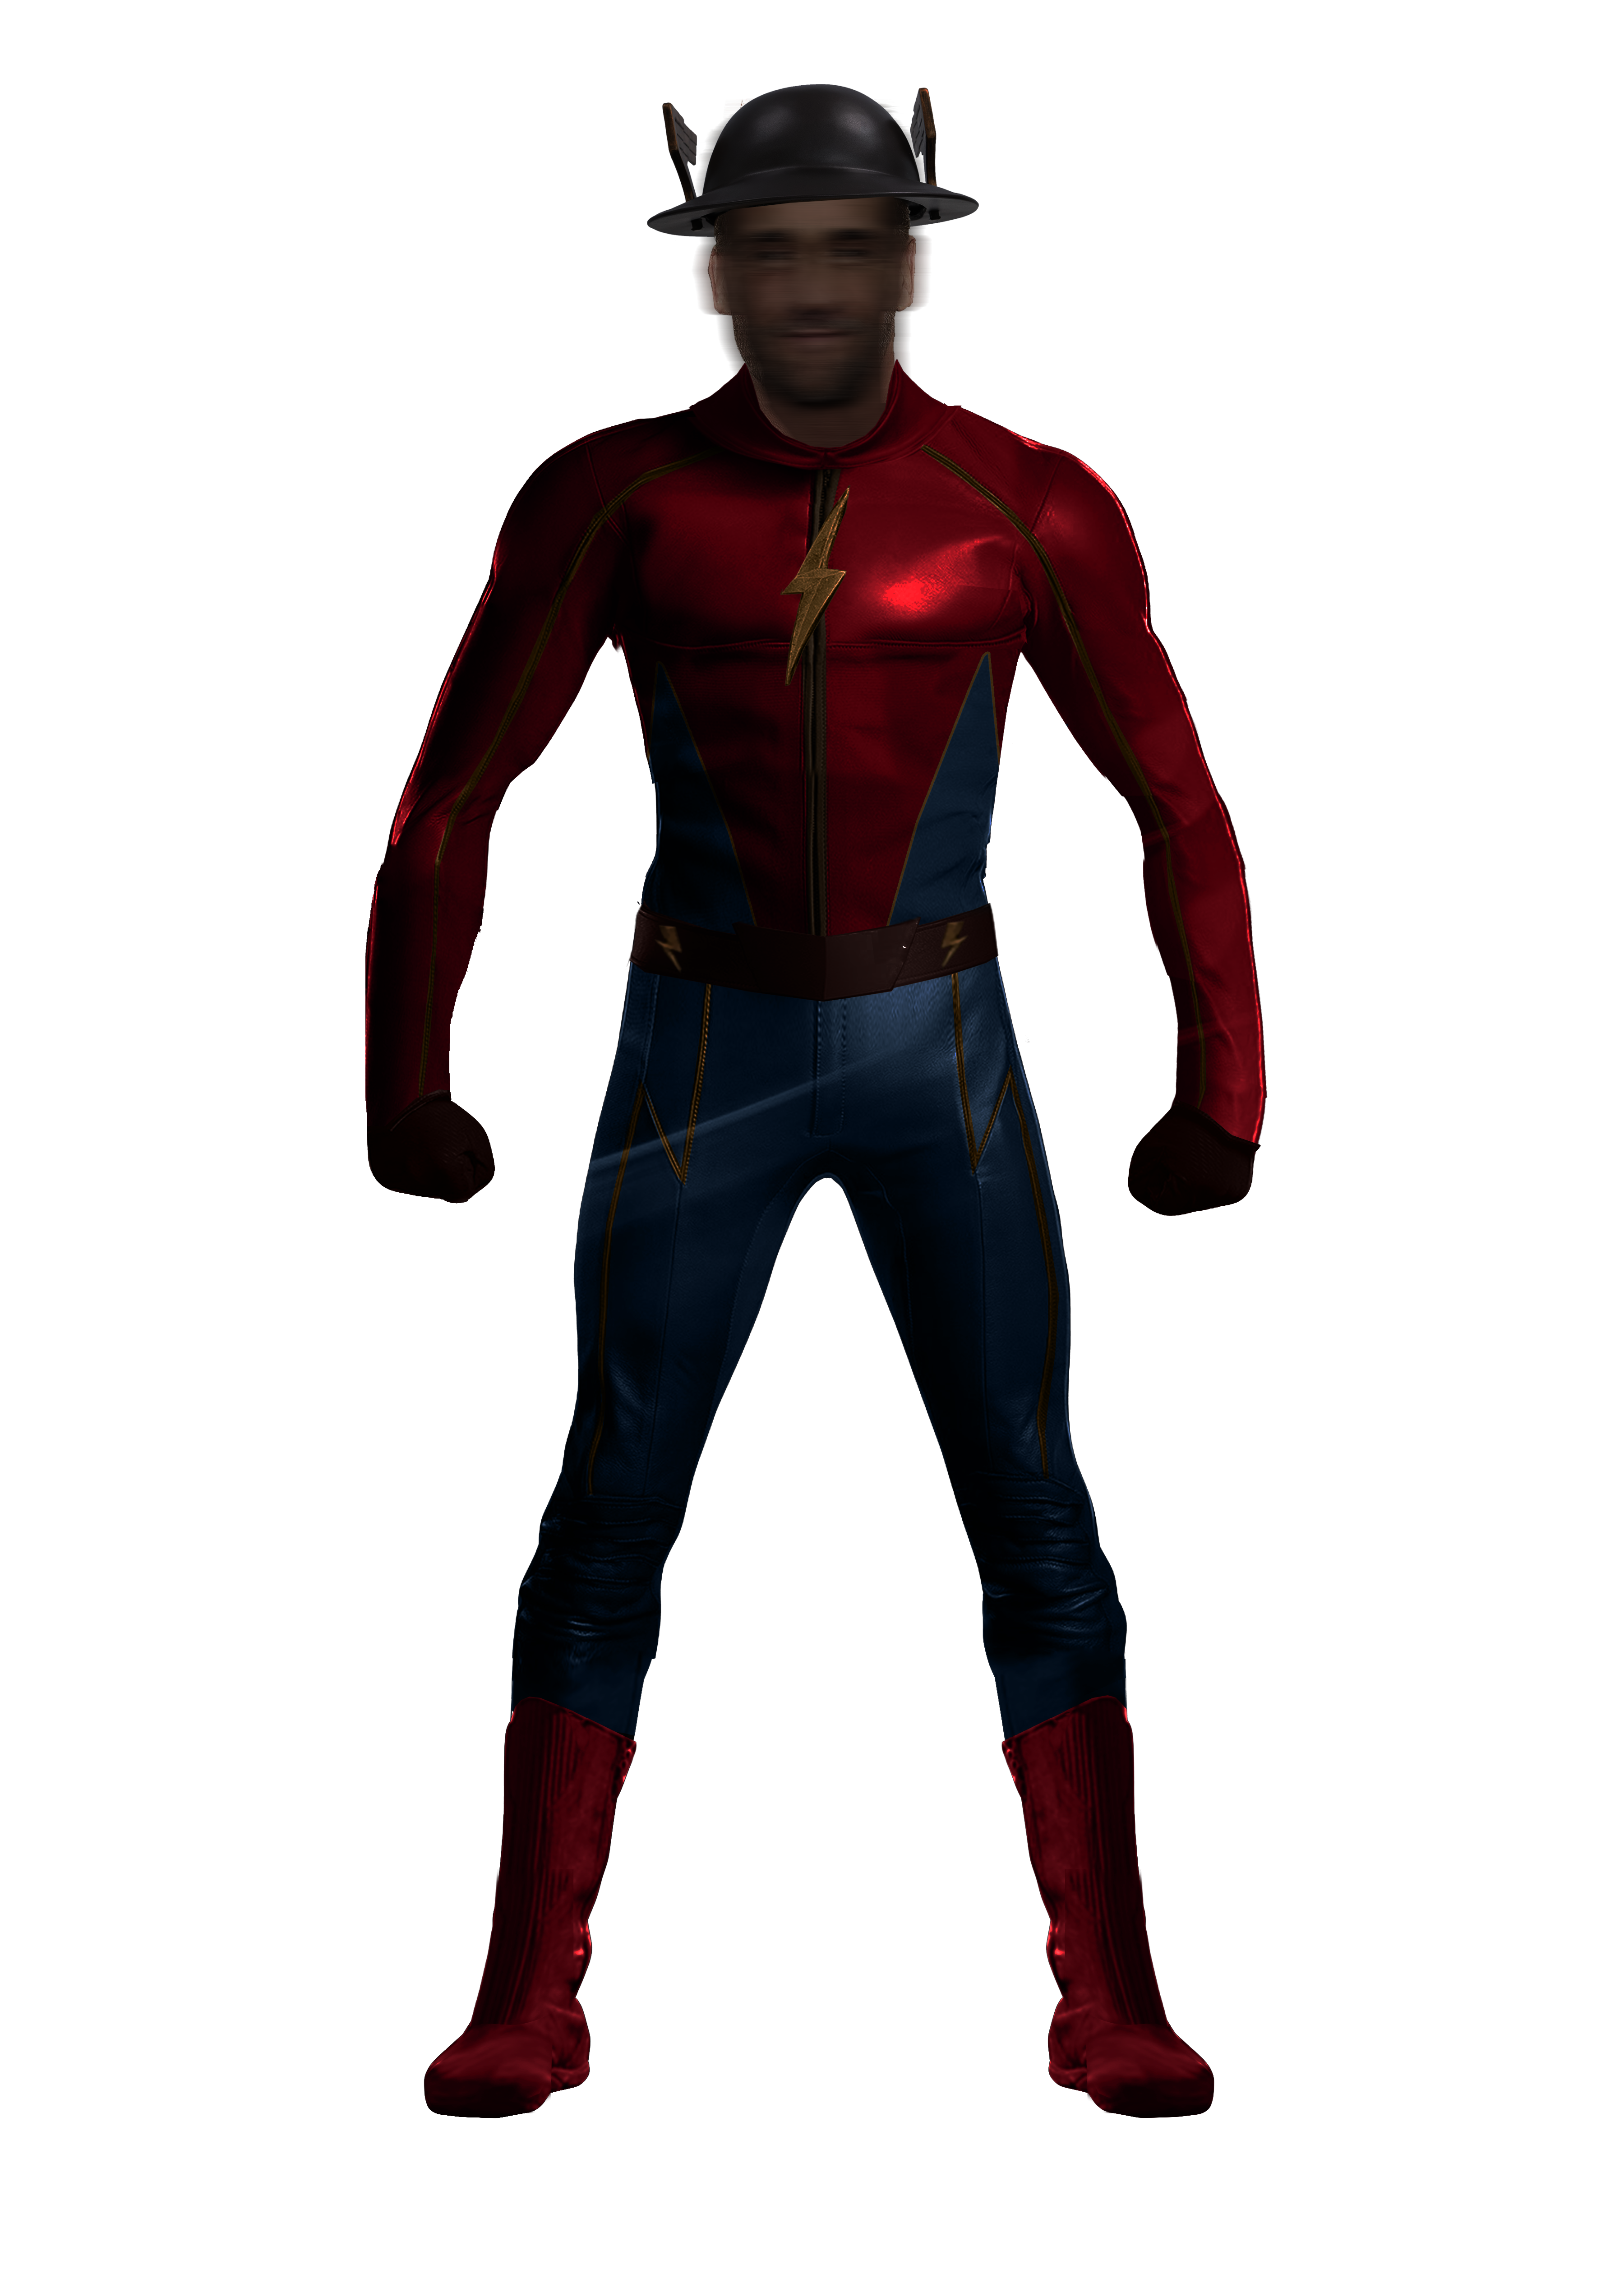 Cw flash png. Concepts made from wally